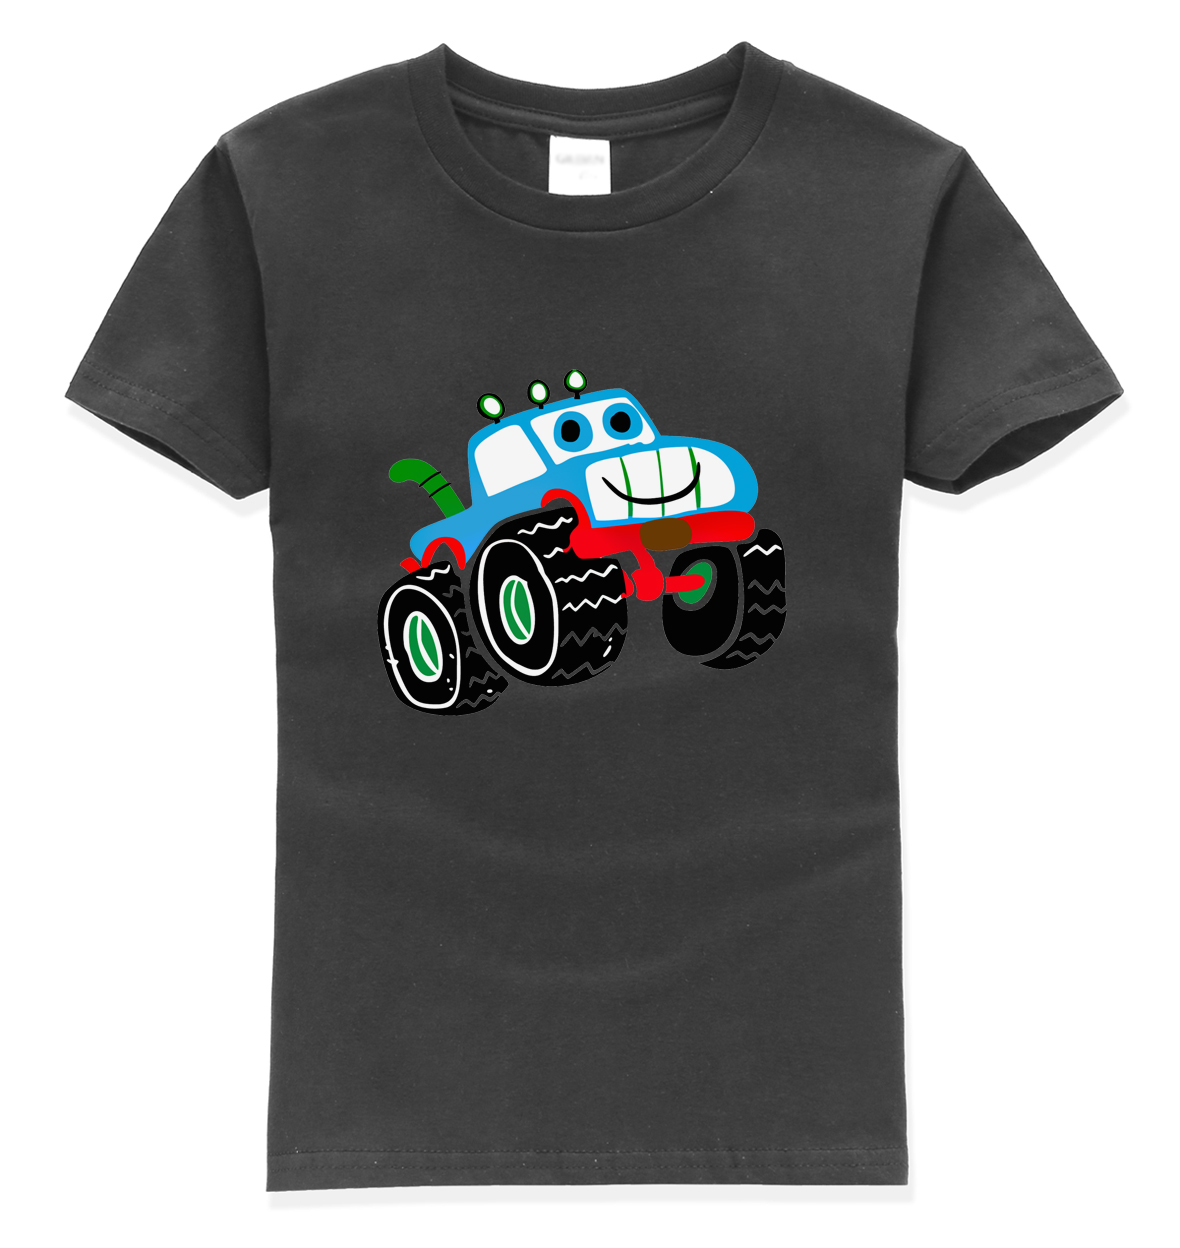 2018 summer new fashion brand hot sale t shirts children funny cartoon car tops tee homme kids t shirt boys clothes short sleeve женская футболка brand new t tee 1699